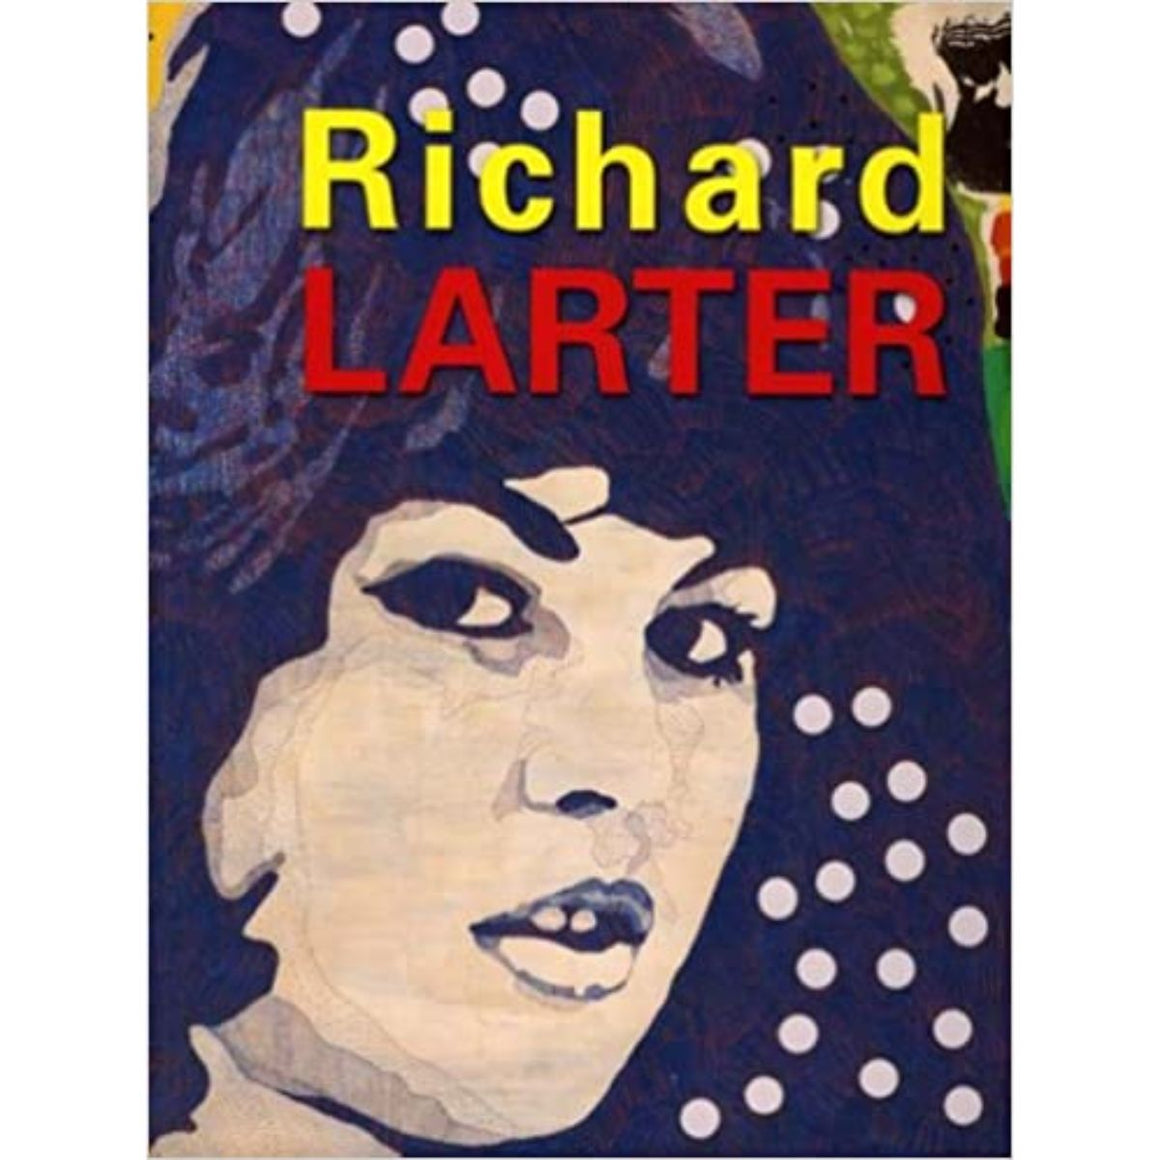 RICHARD LARTER | Author: Deborah Hart